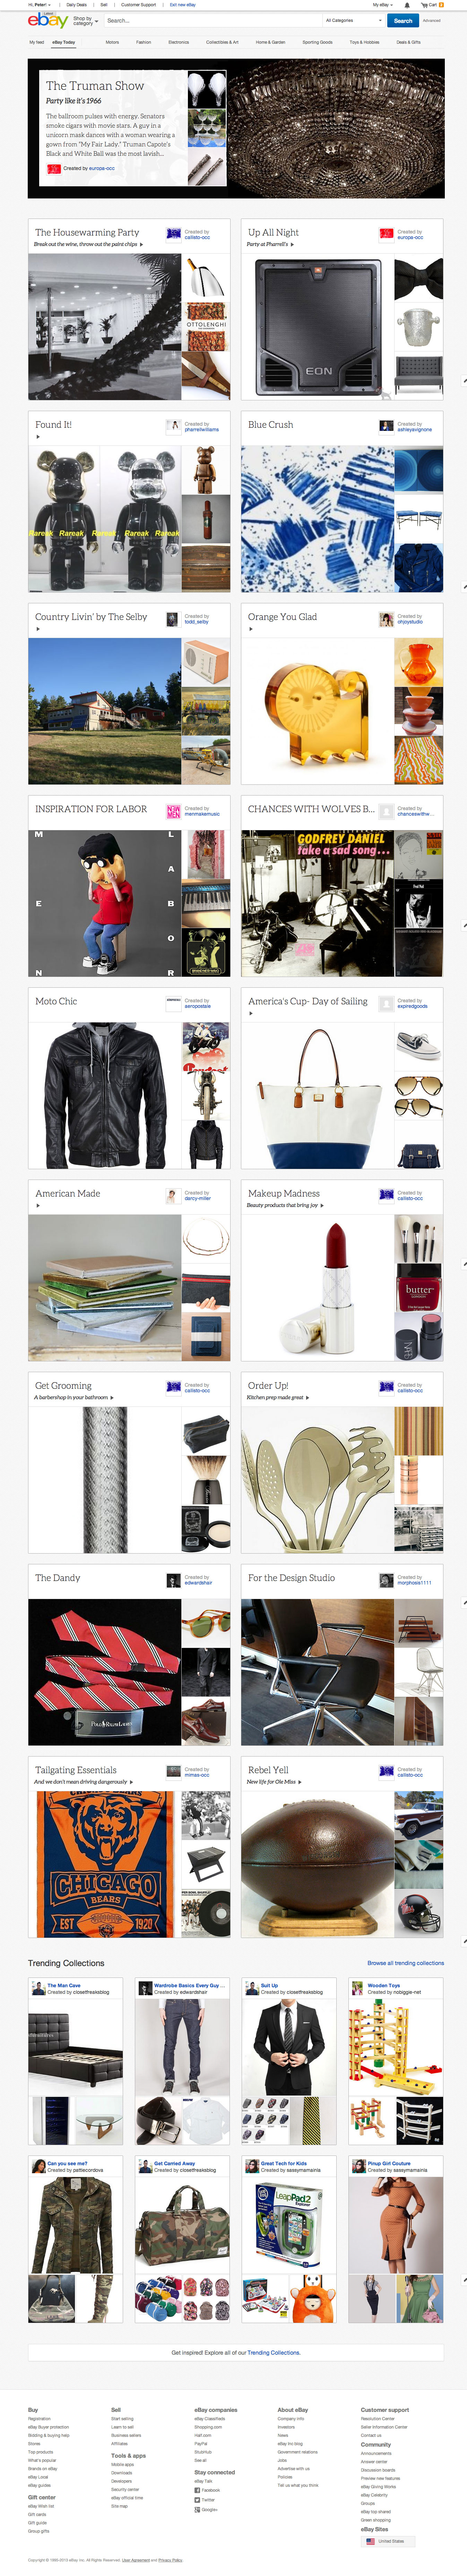 eBay Today, a new page on eBay that helps you easily discover the very best collections of items on eBay